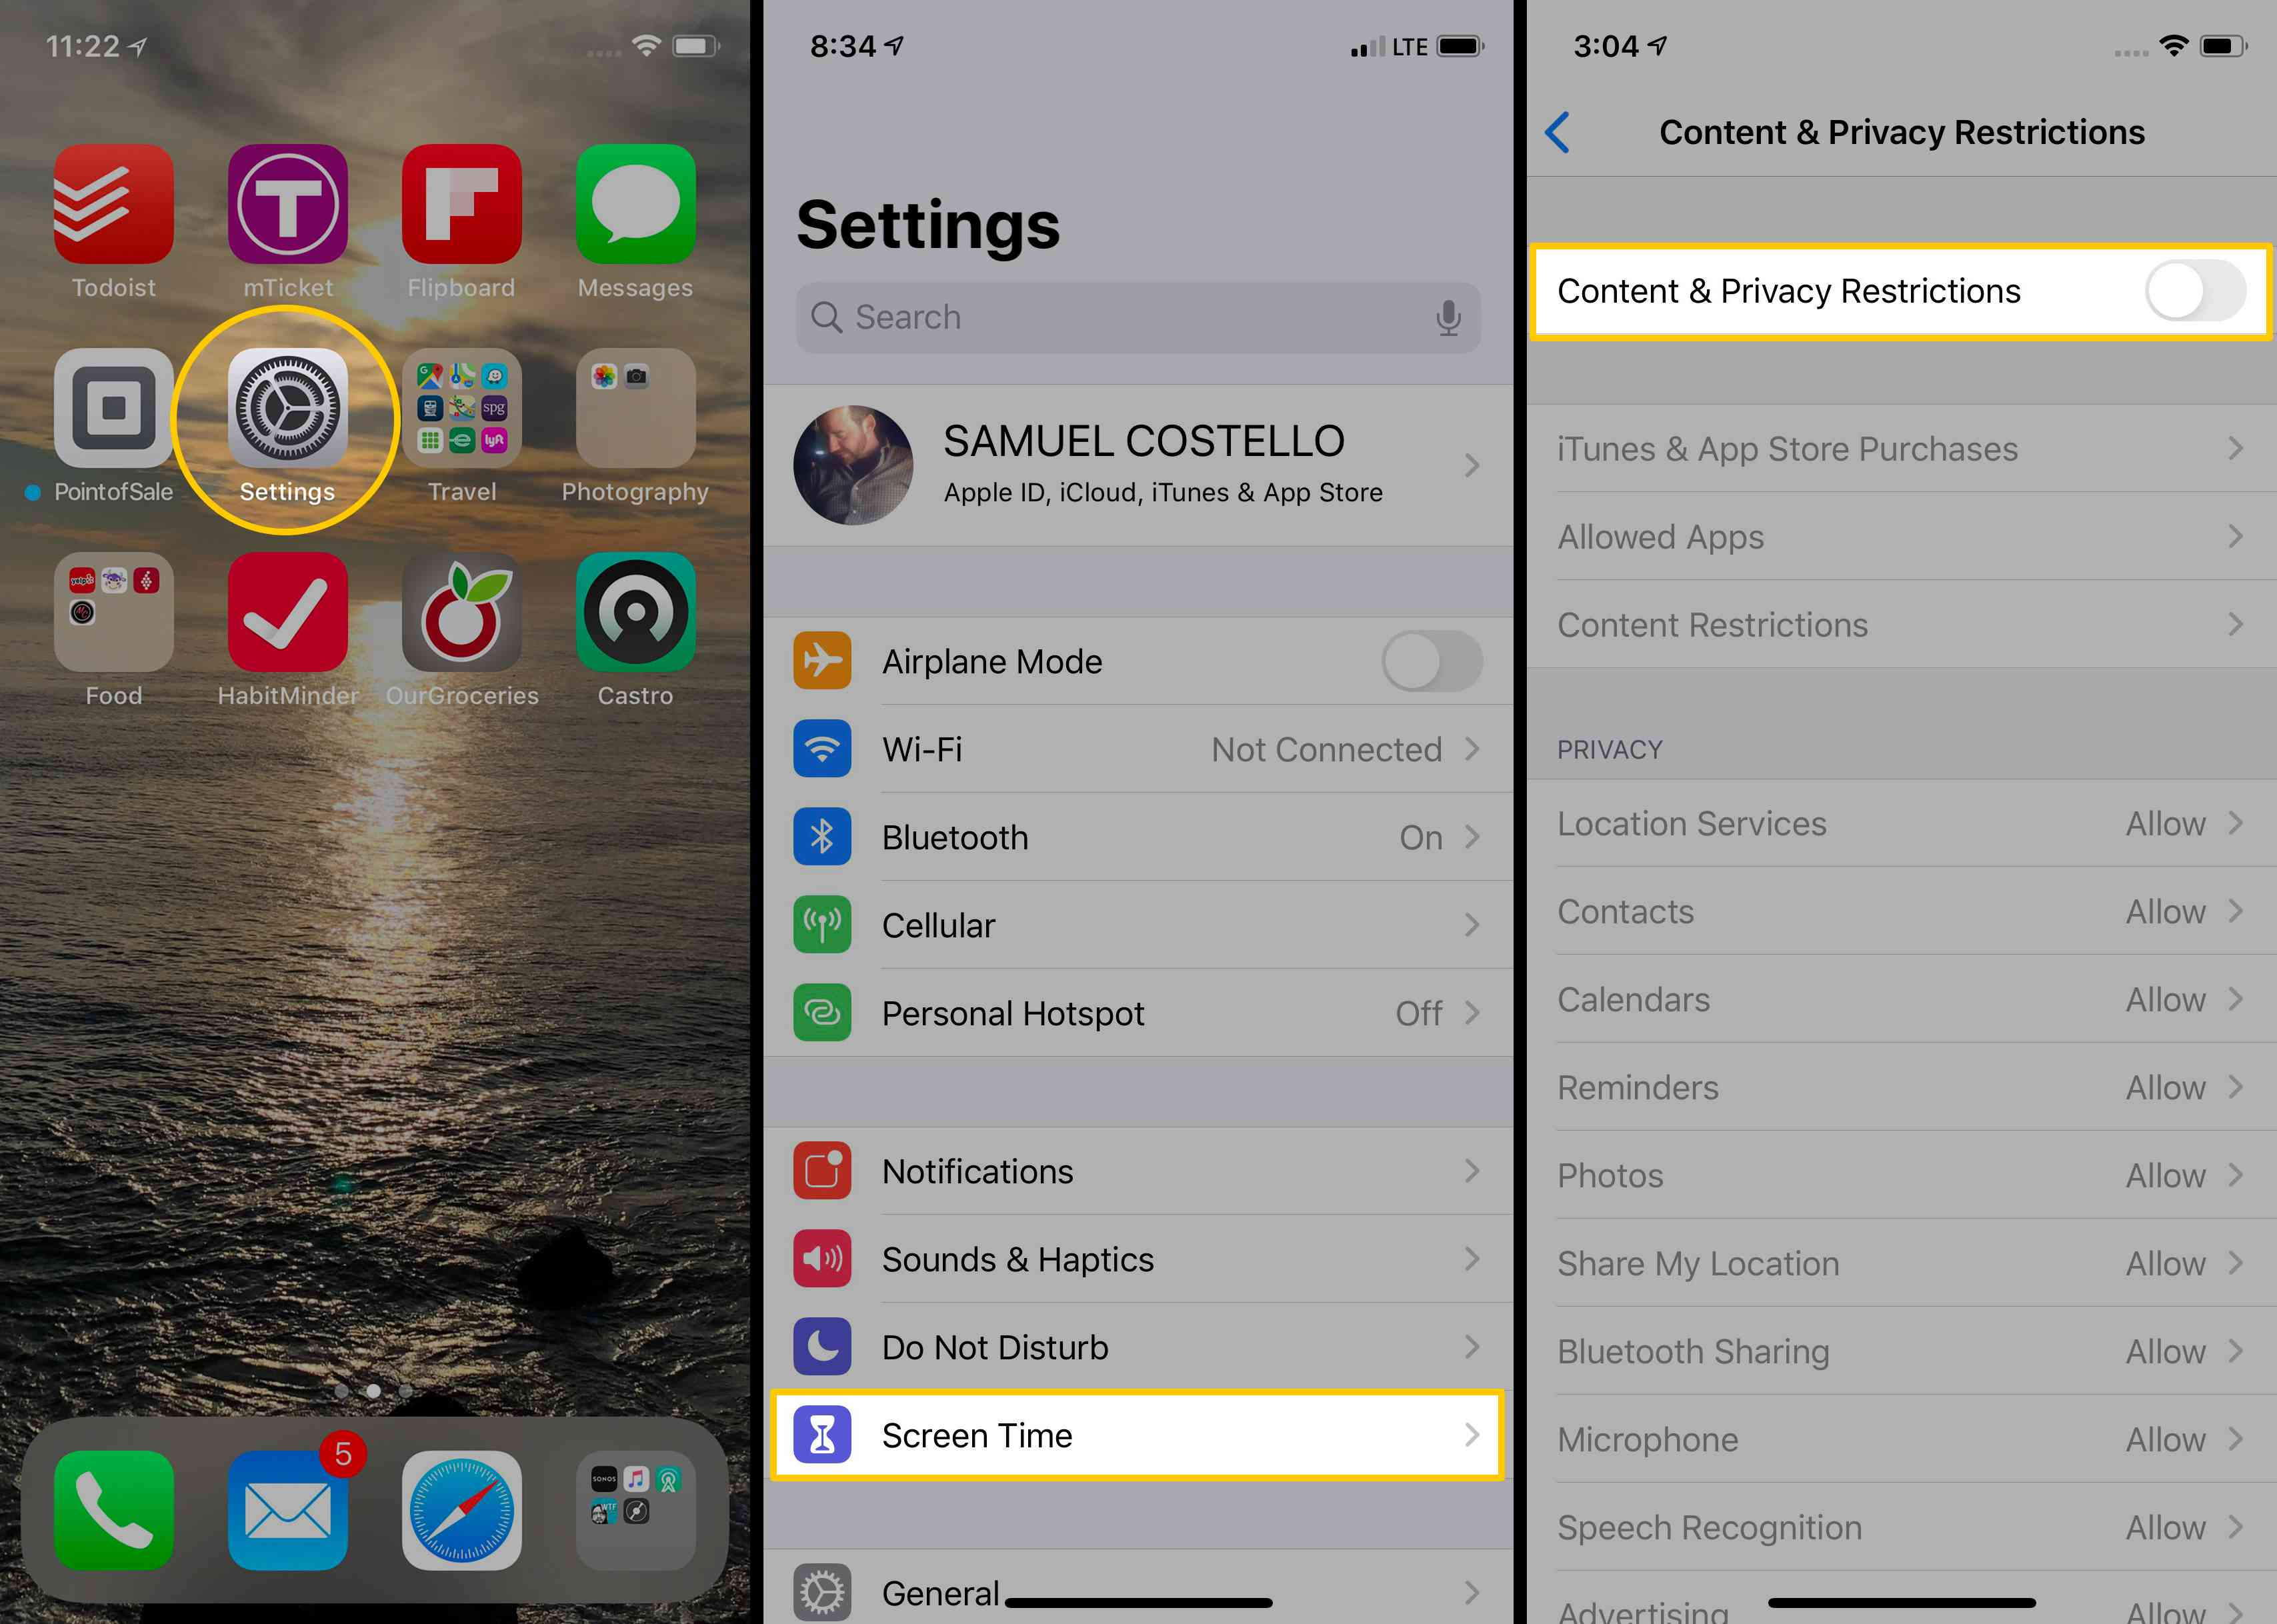 Screenshots showing how to navigate to Screen Time Content & Privacy Restrictions.